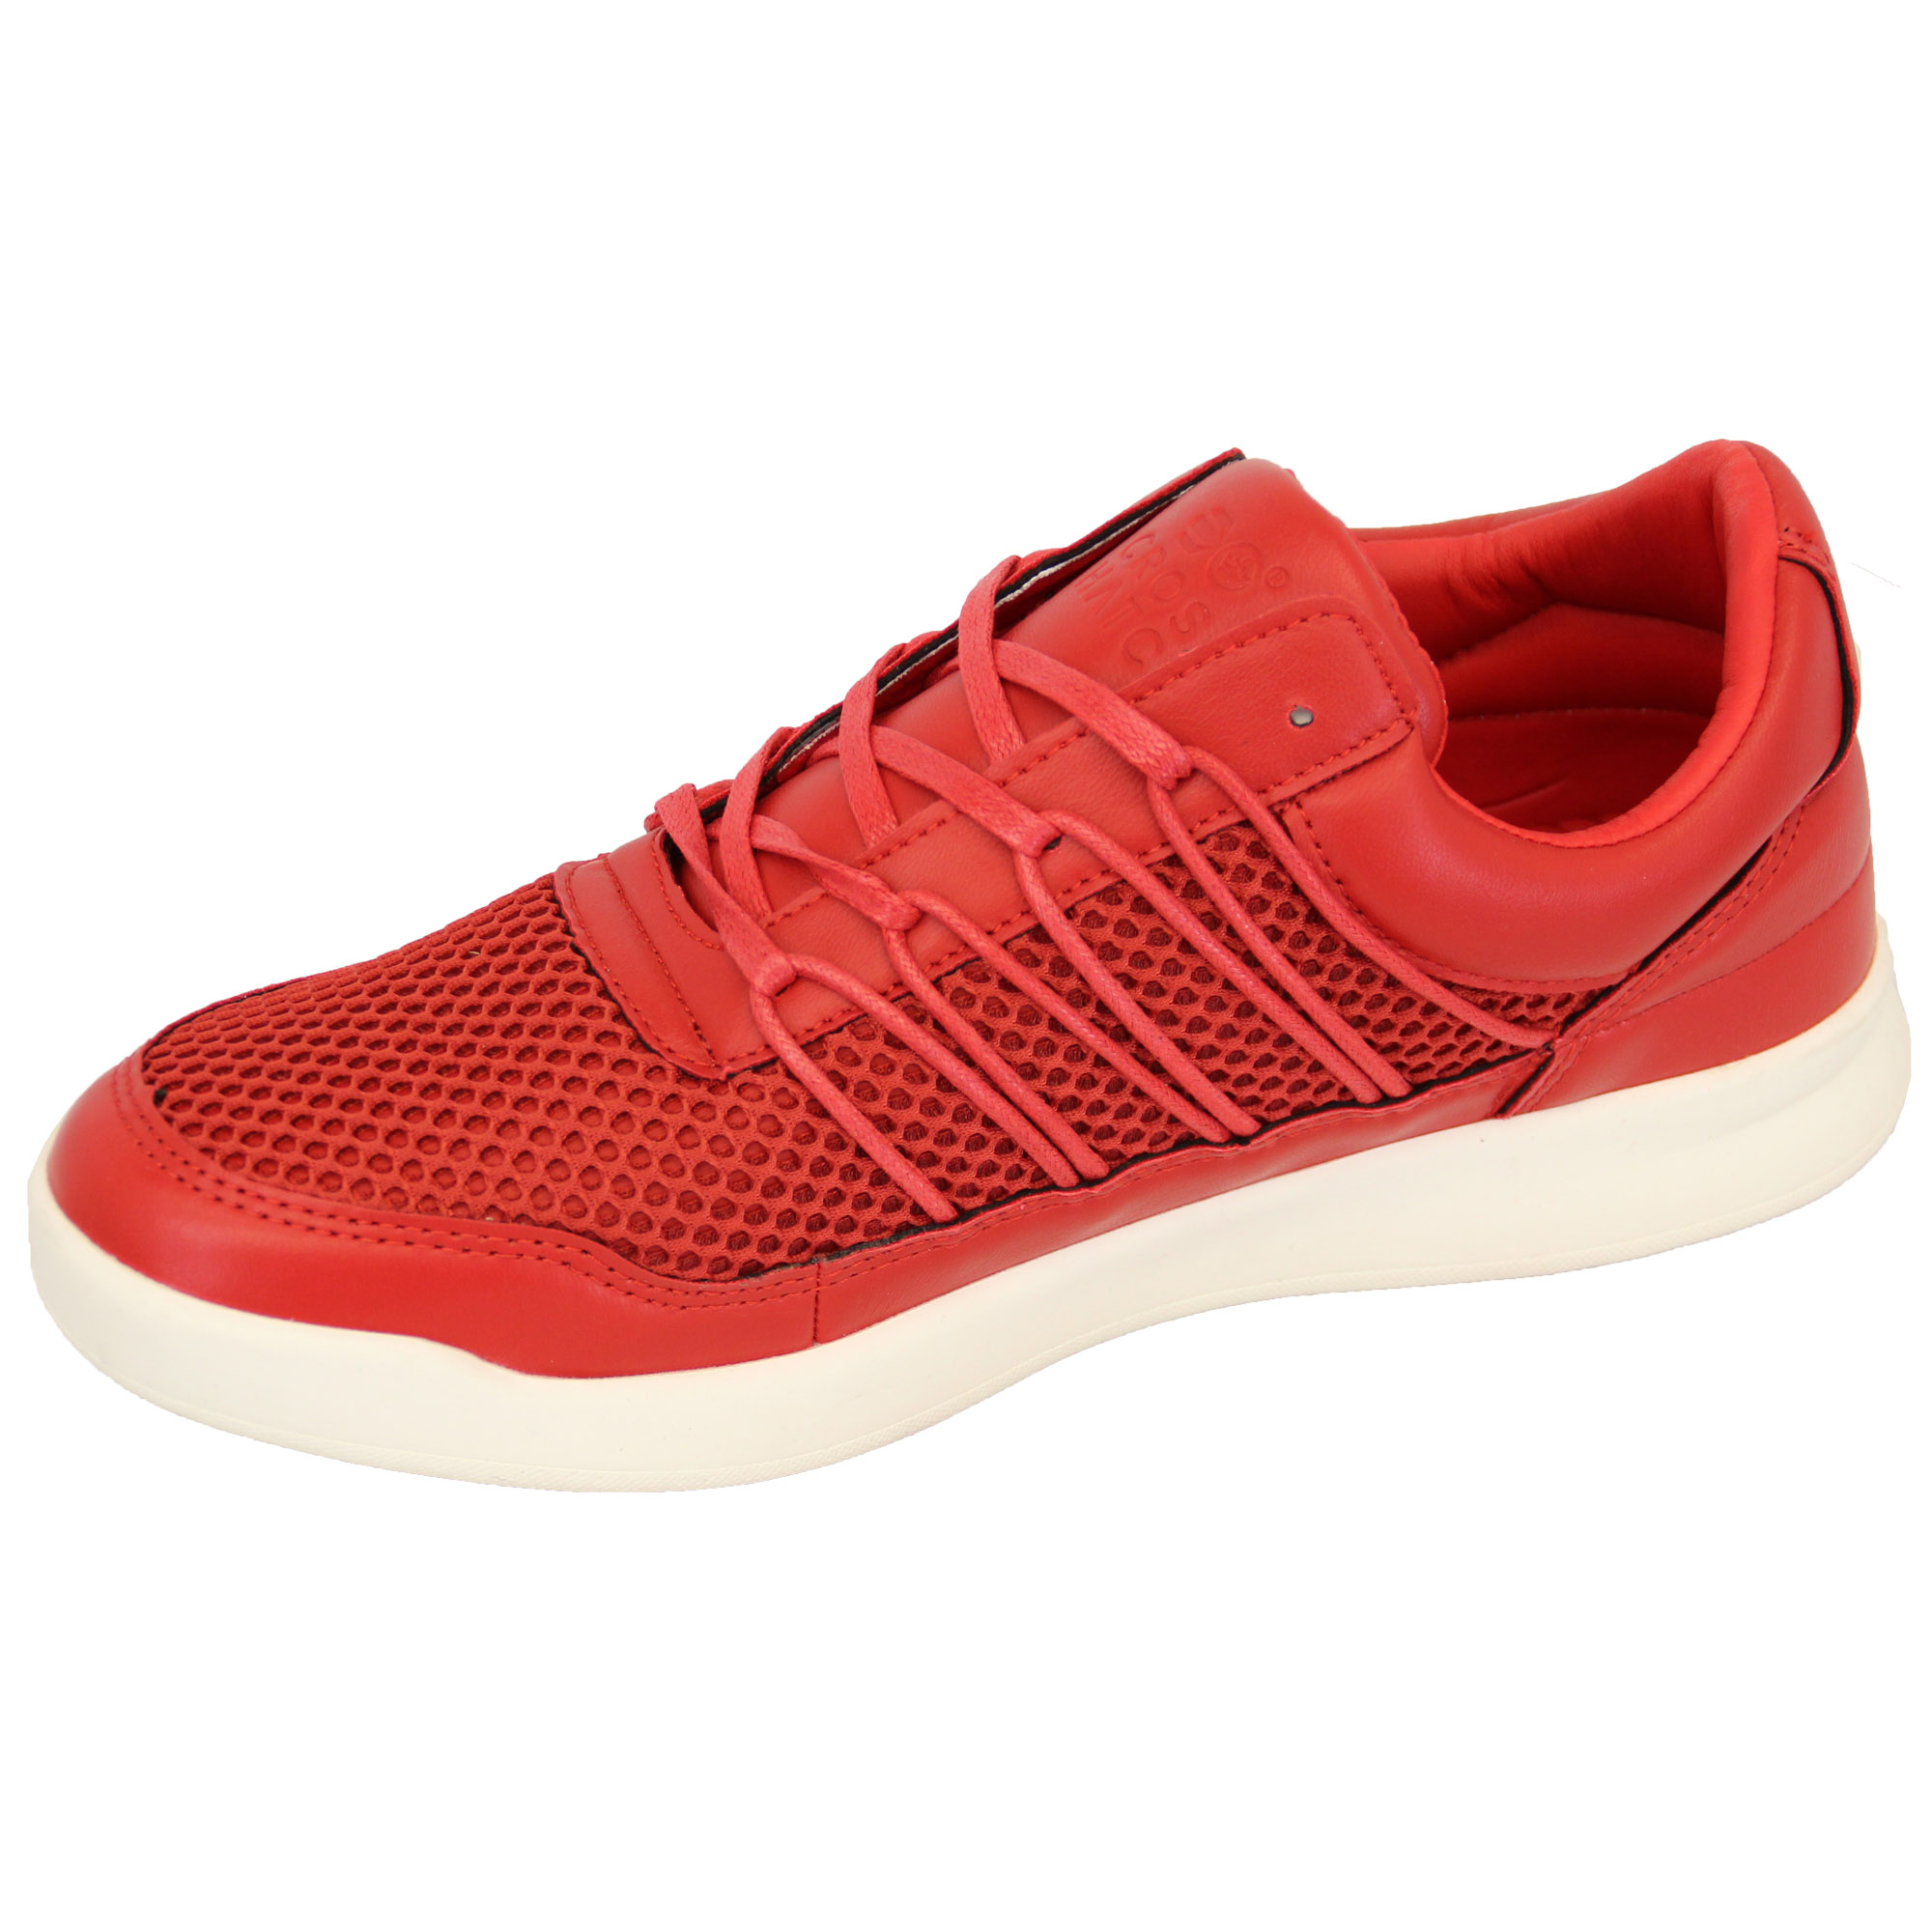 Mens-Trainers-Crosshatch-Jogging-Shoes-Lace-Up-Walking-Running-Sports-Gym-Mesh thumbnail 6